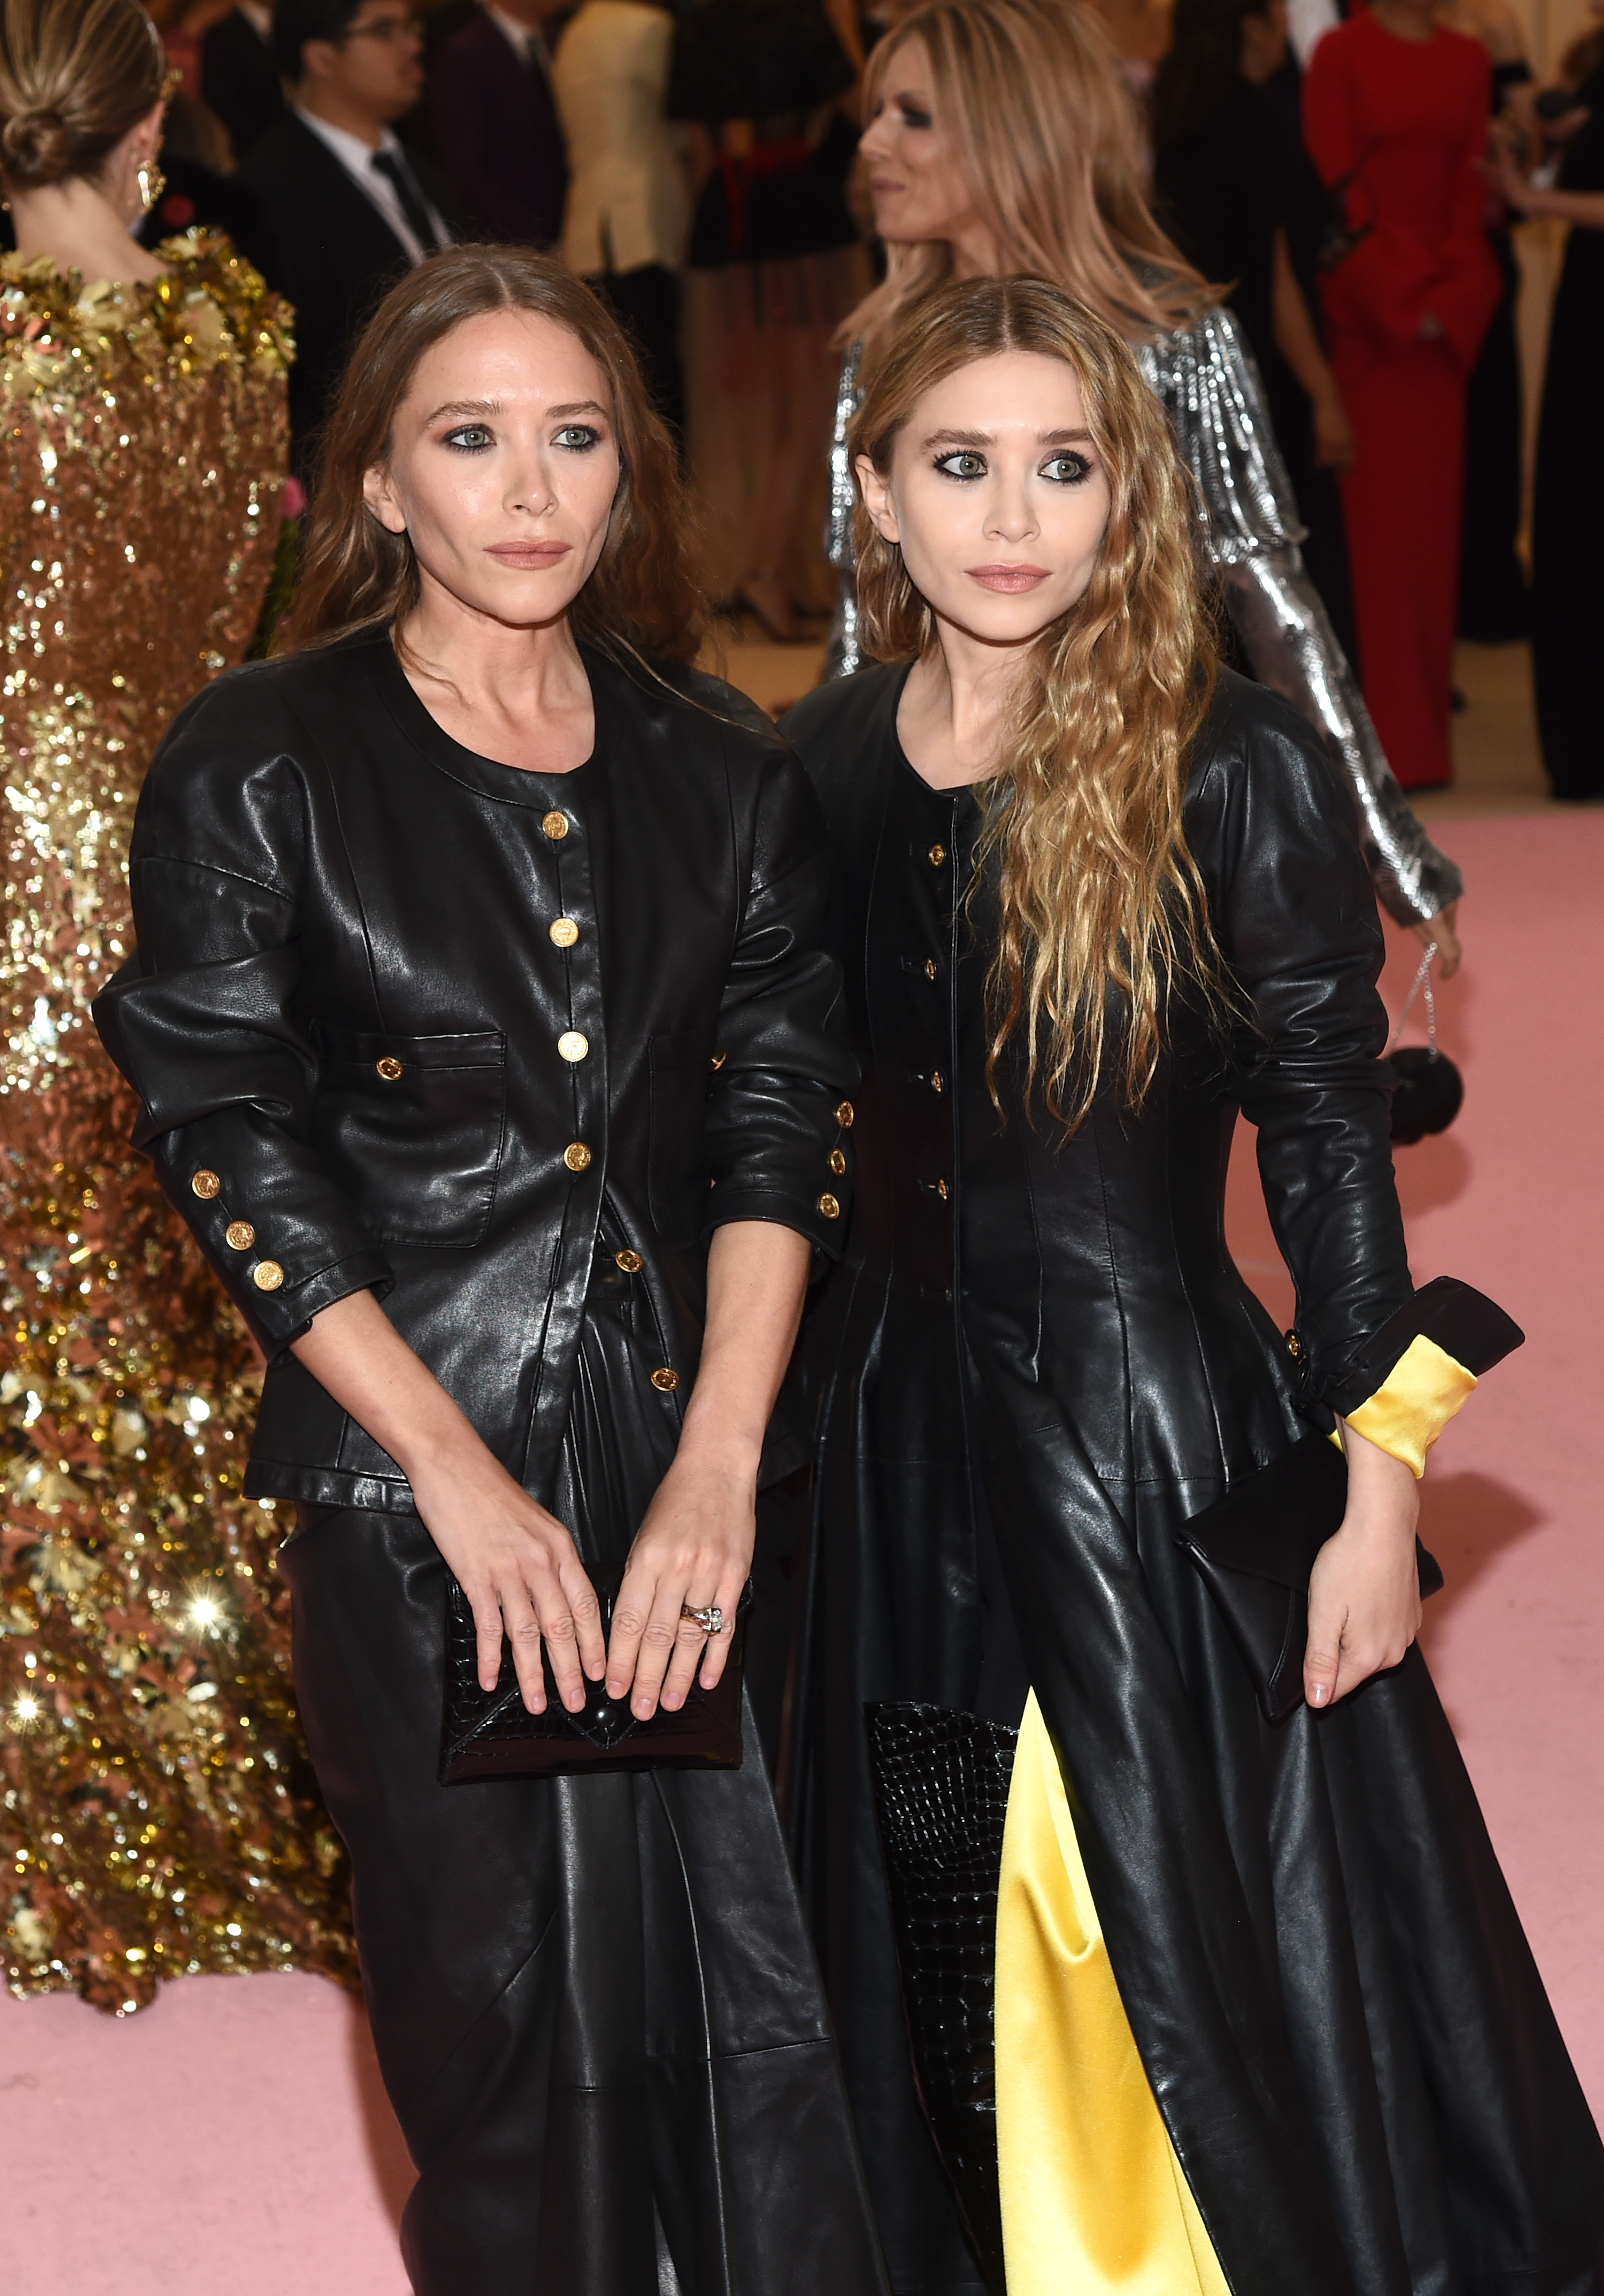 Mary-Kate Olsen and Ashley OlsenCostume Institute Benefit celebrating the opening of Camp: Notes on Fashion, Arrivals, The Metropolitan Museum of Art, New York, USA - 06 May 2019